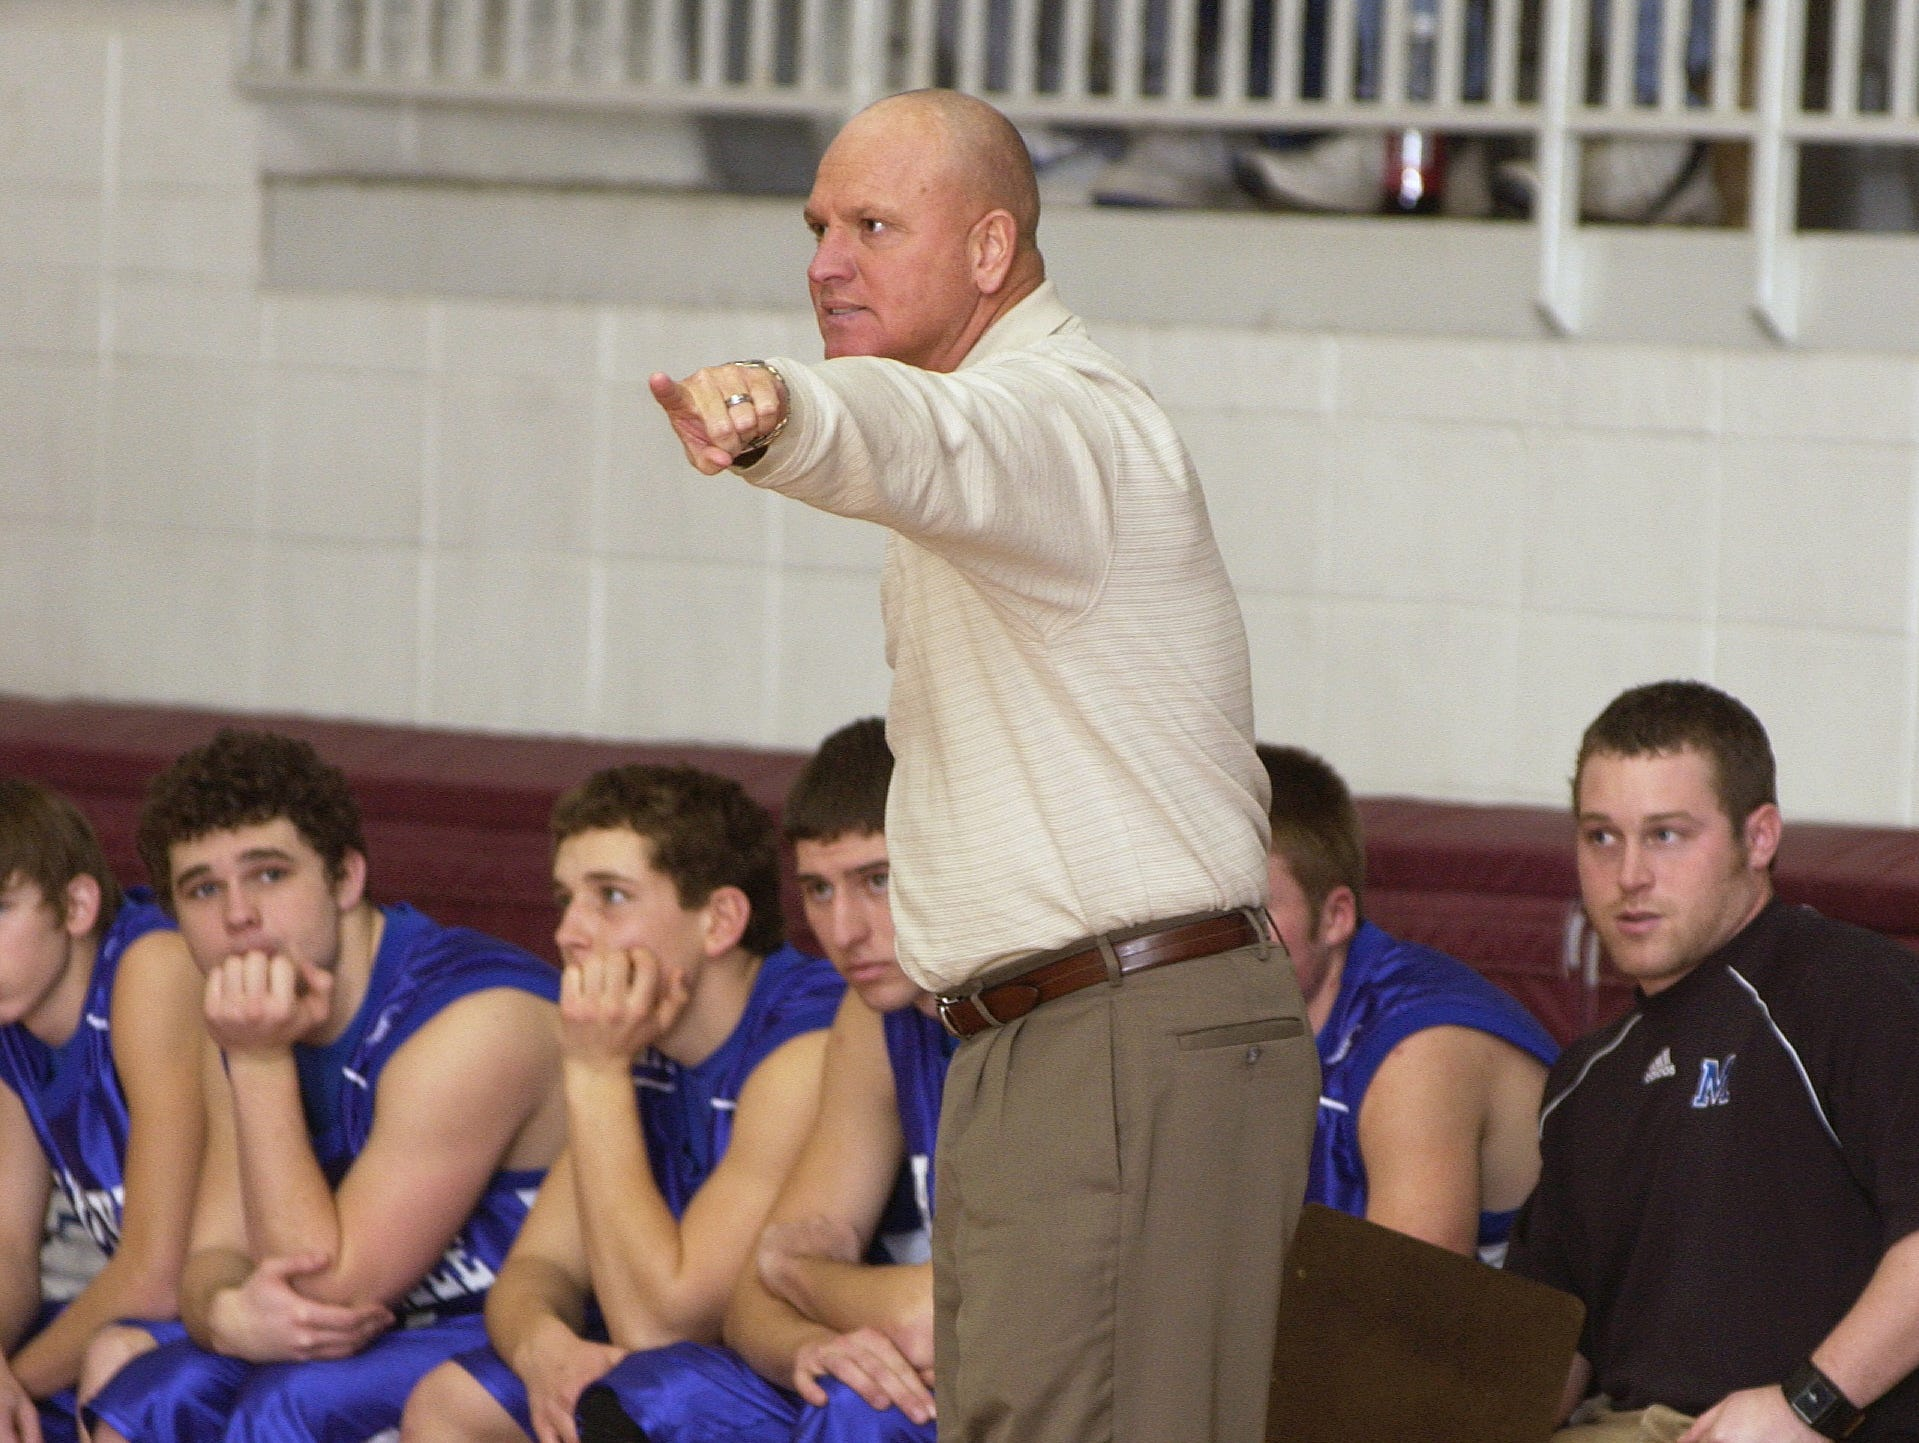 Marionville's Ted Young will be inducted into the 2016 class of the Missouri Basketball Coaches Association Hall of Fame.